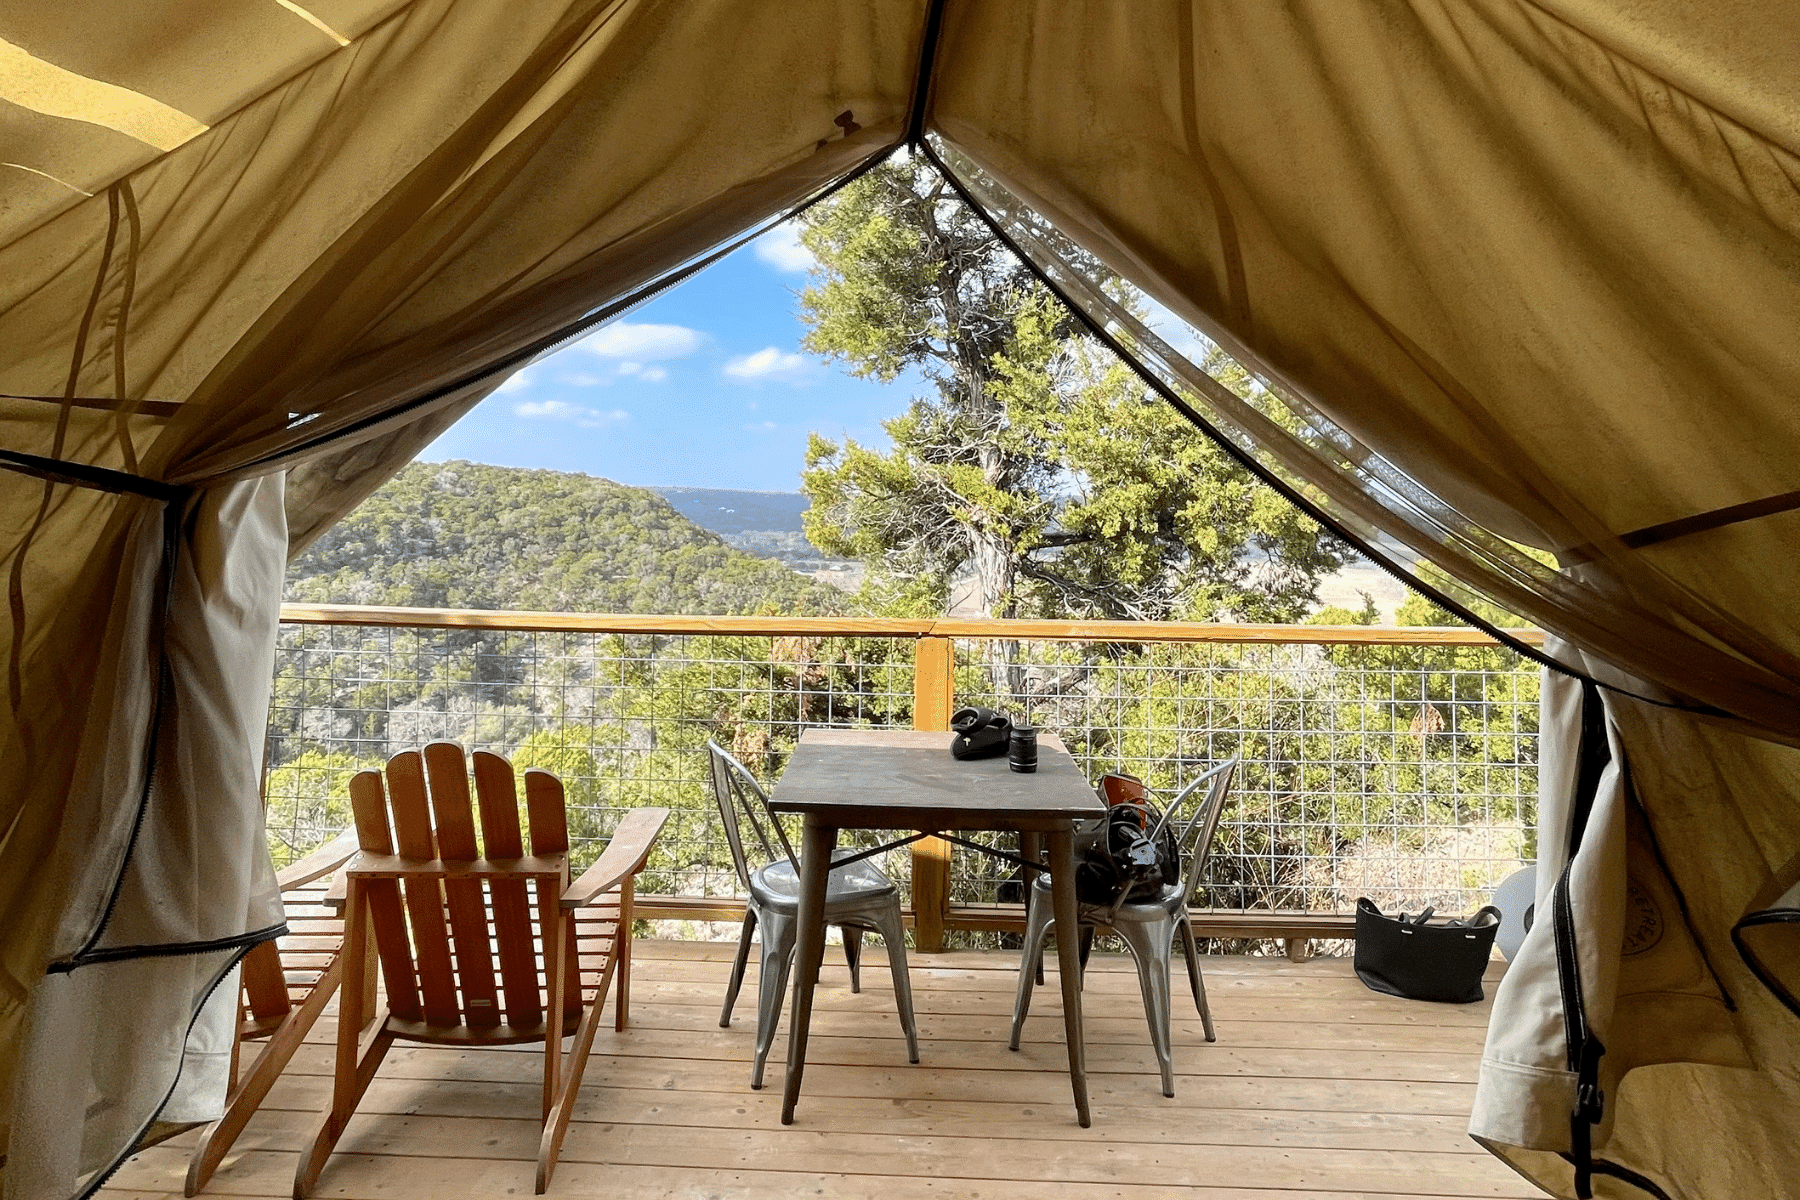 Glamping Packing List - what to bring glamping